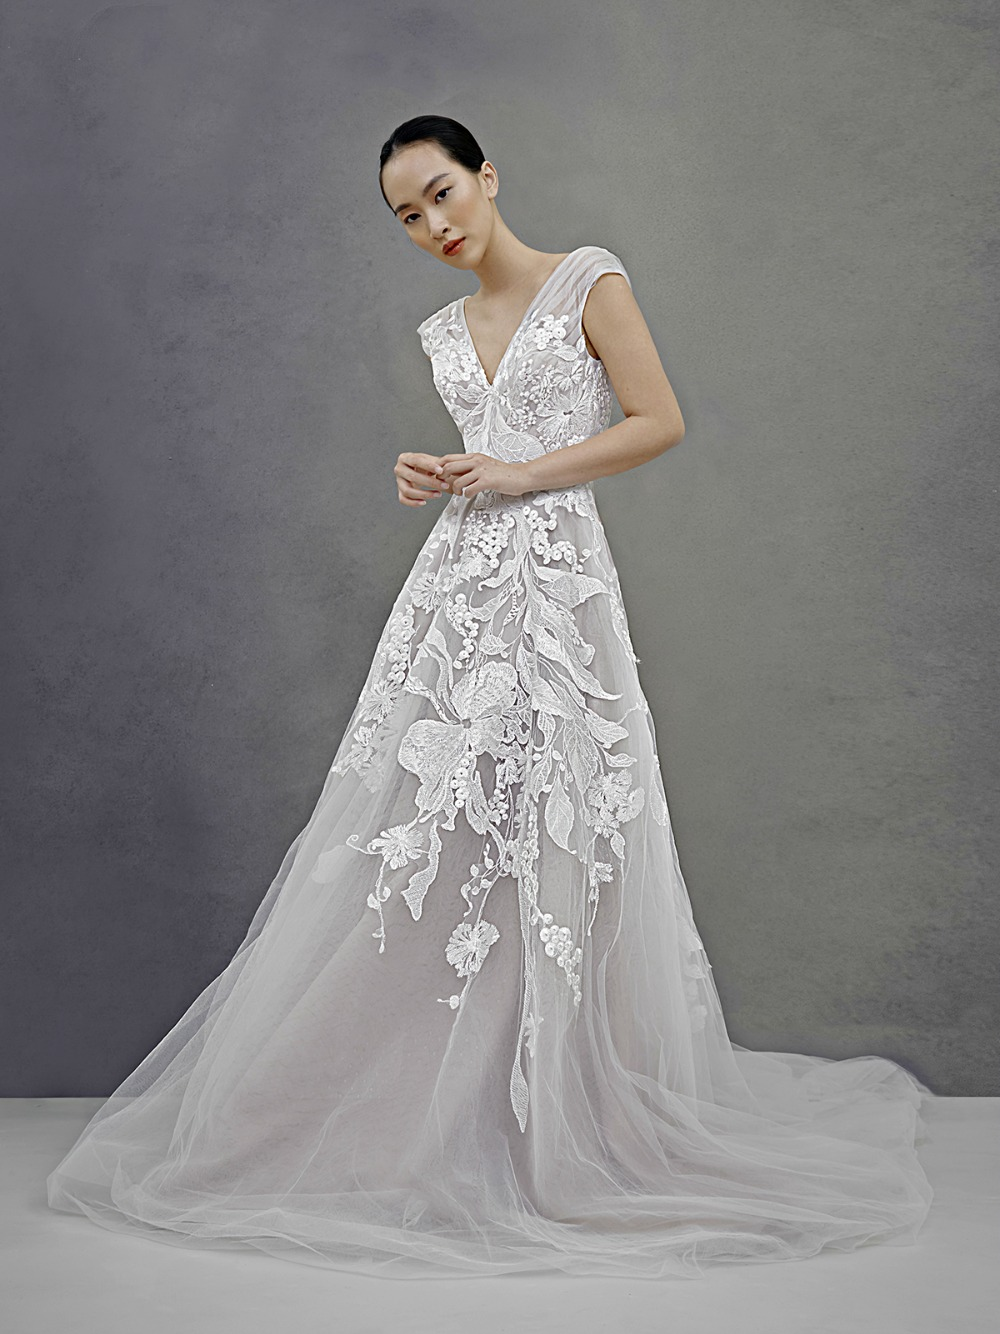 Naomi wedding dress by Ivy and Aster